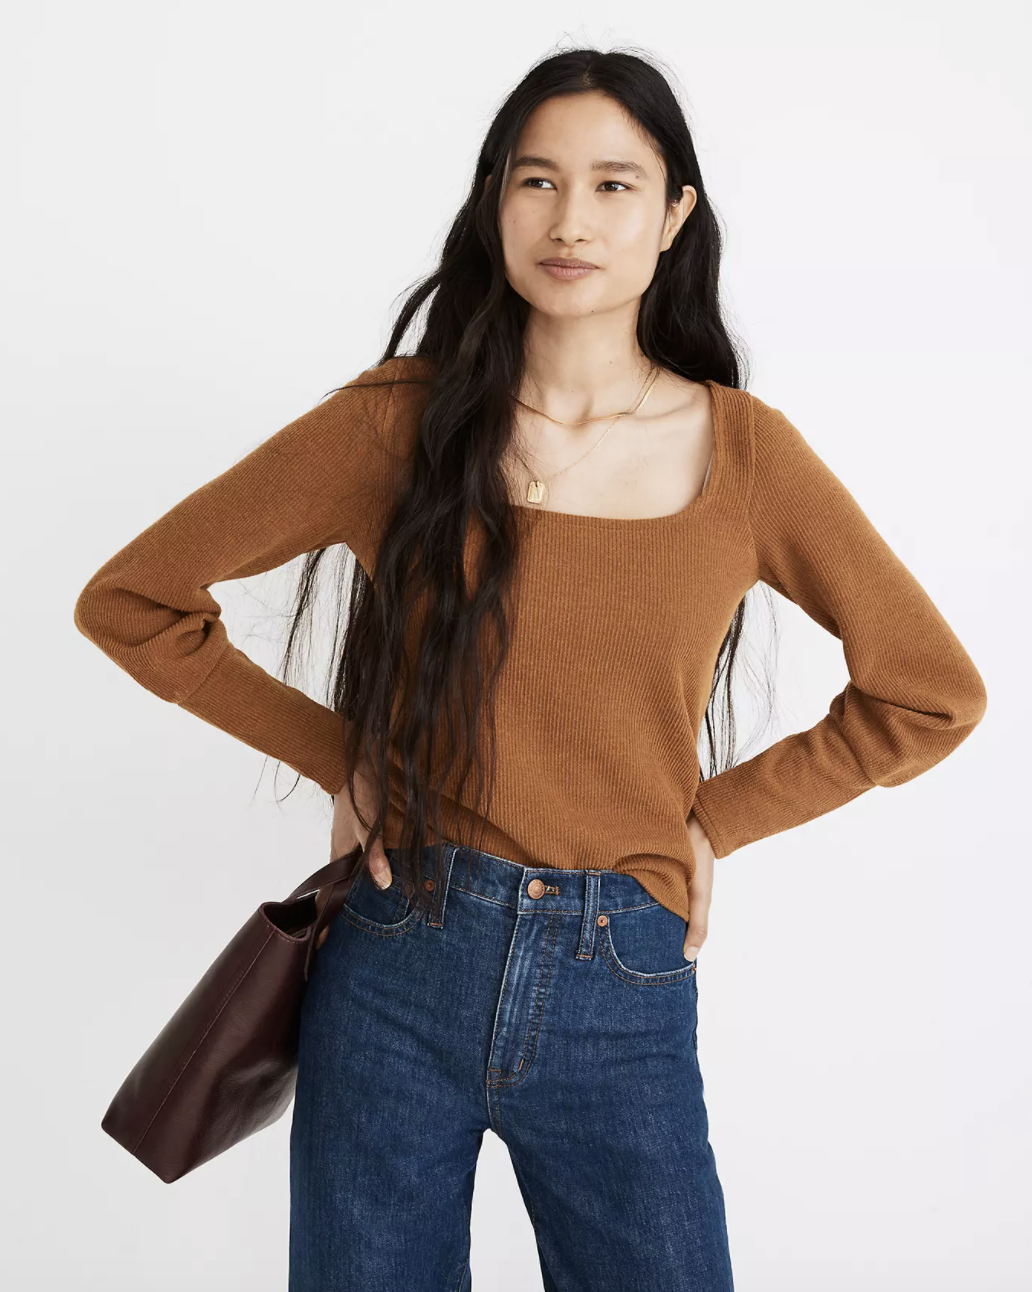 the top in brown